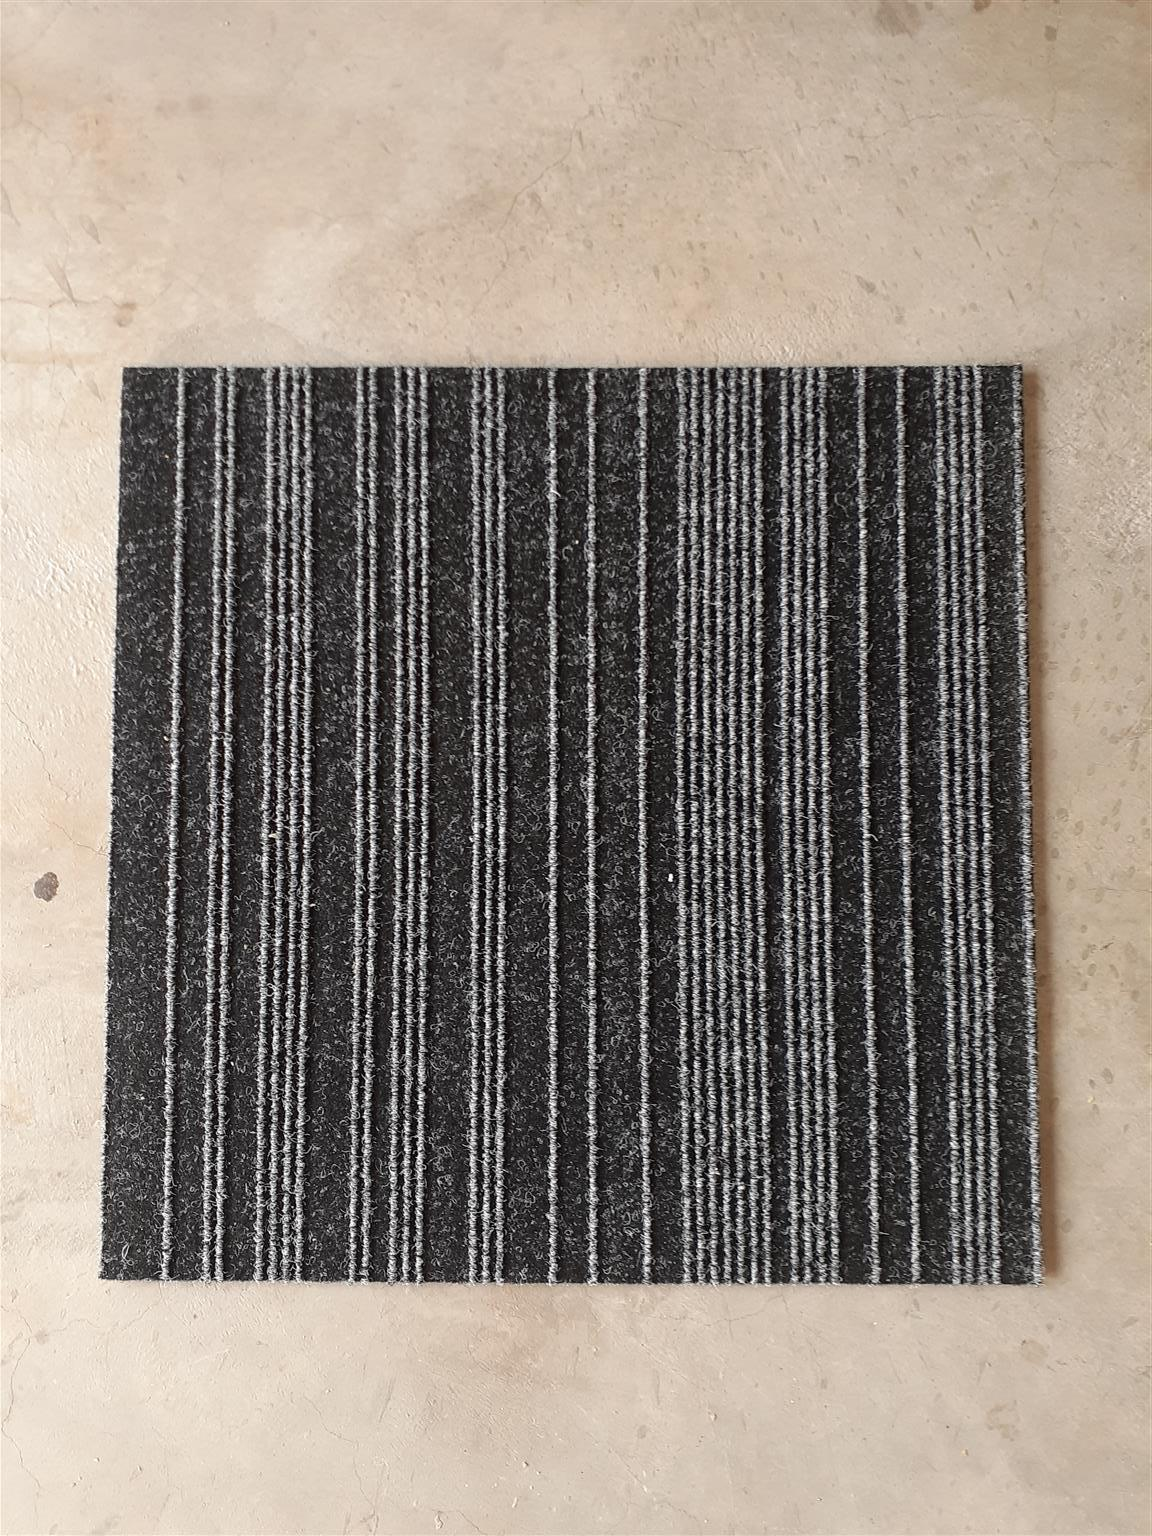 Used Carpet tiles and Installation